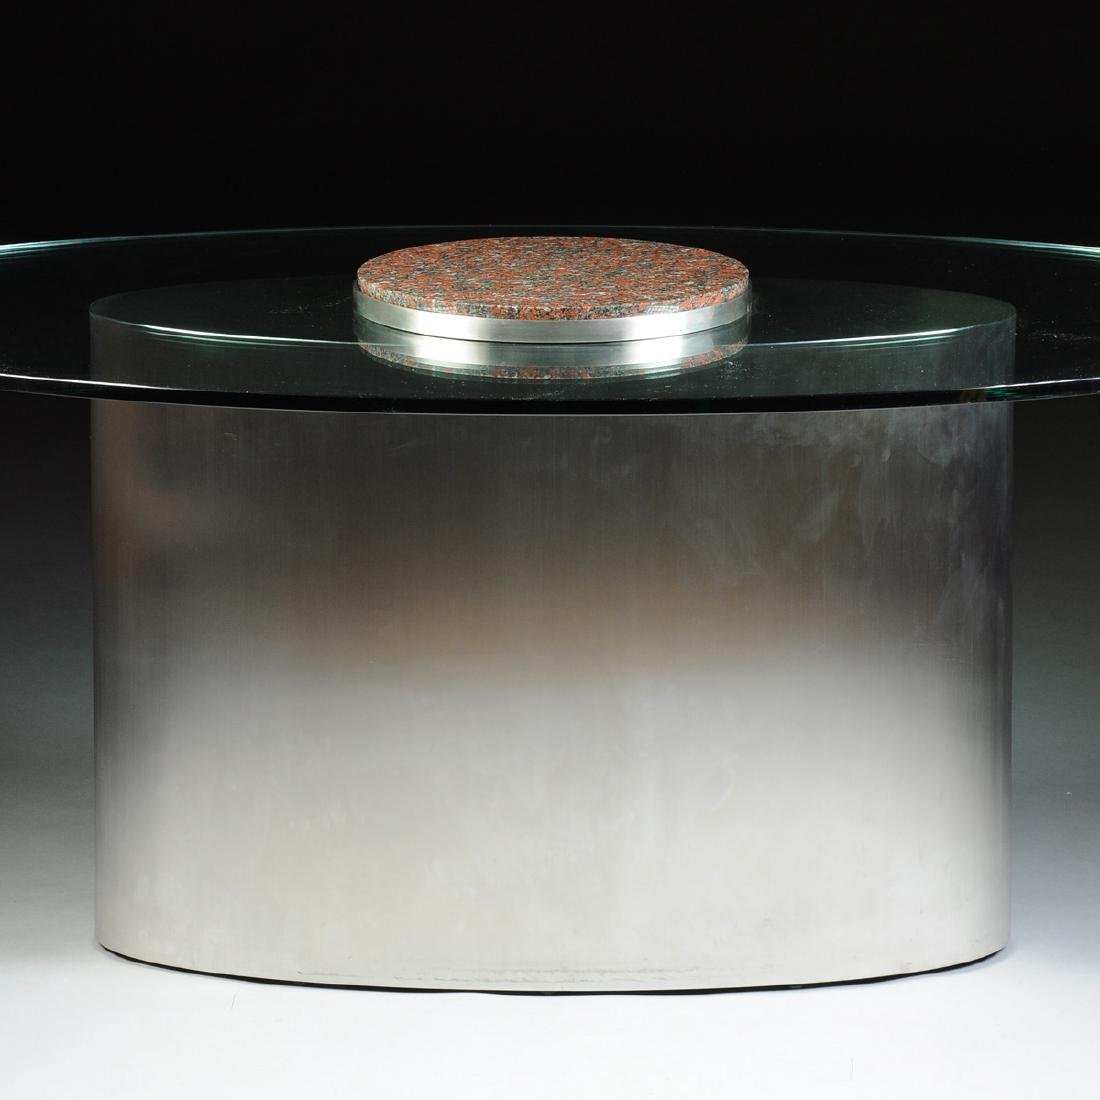 A CONTEMPORARY GLASS TOPPED STAINLESS STEEL AND GRANITE - 2